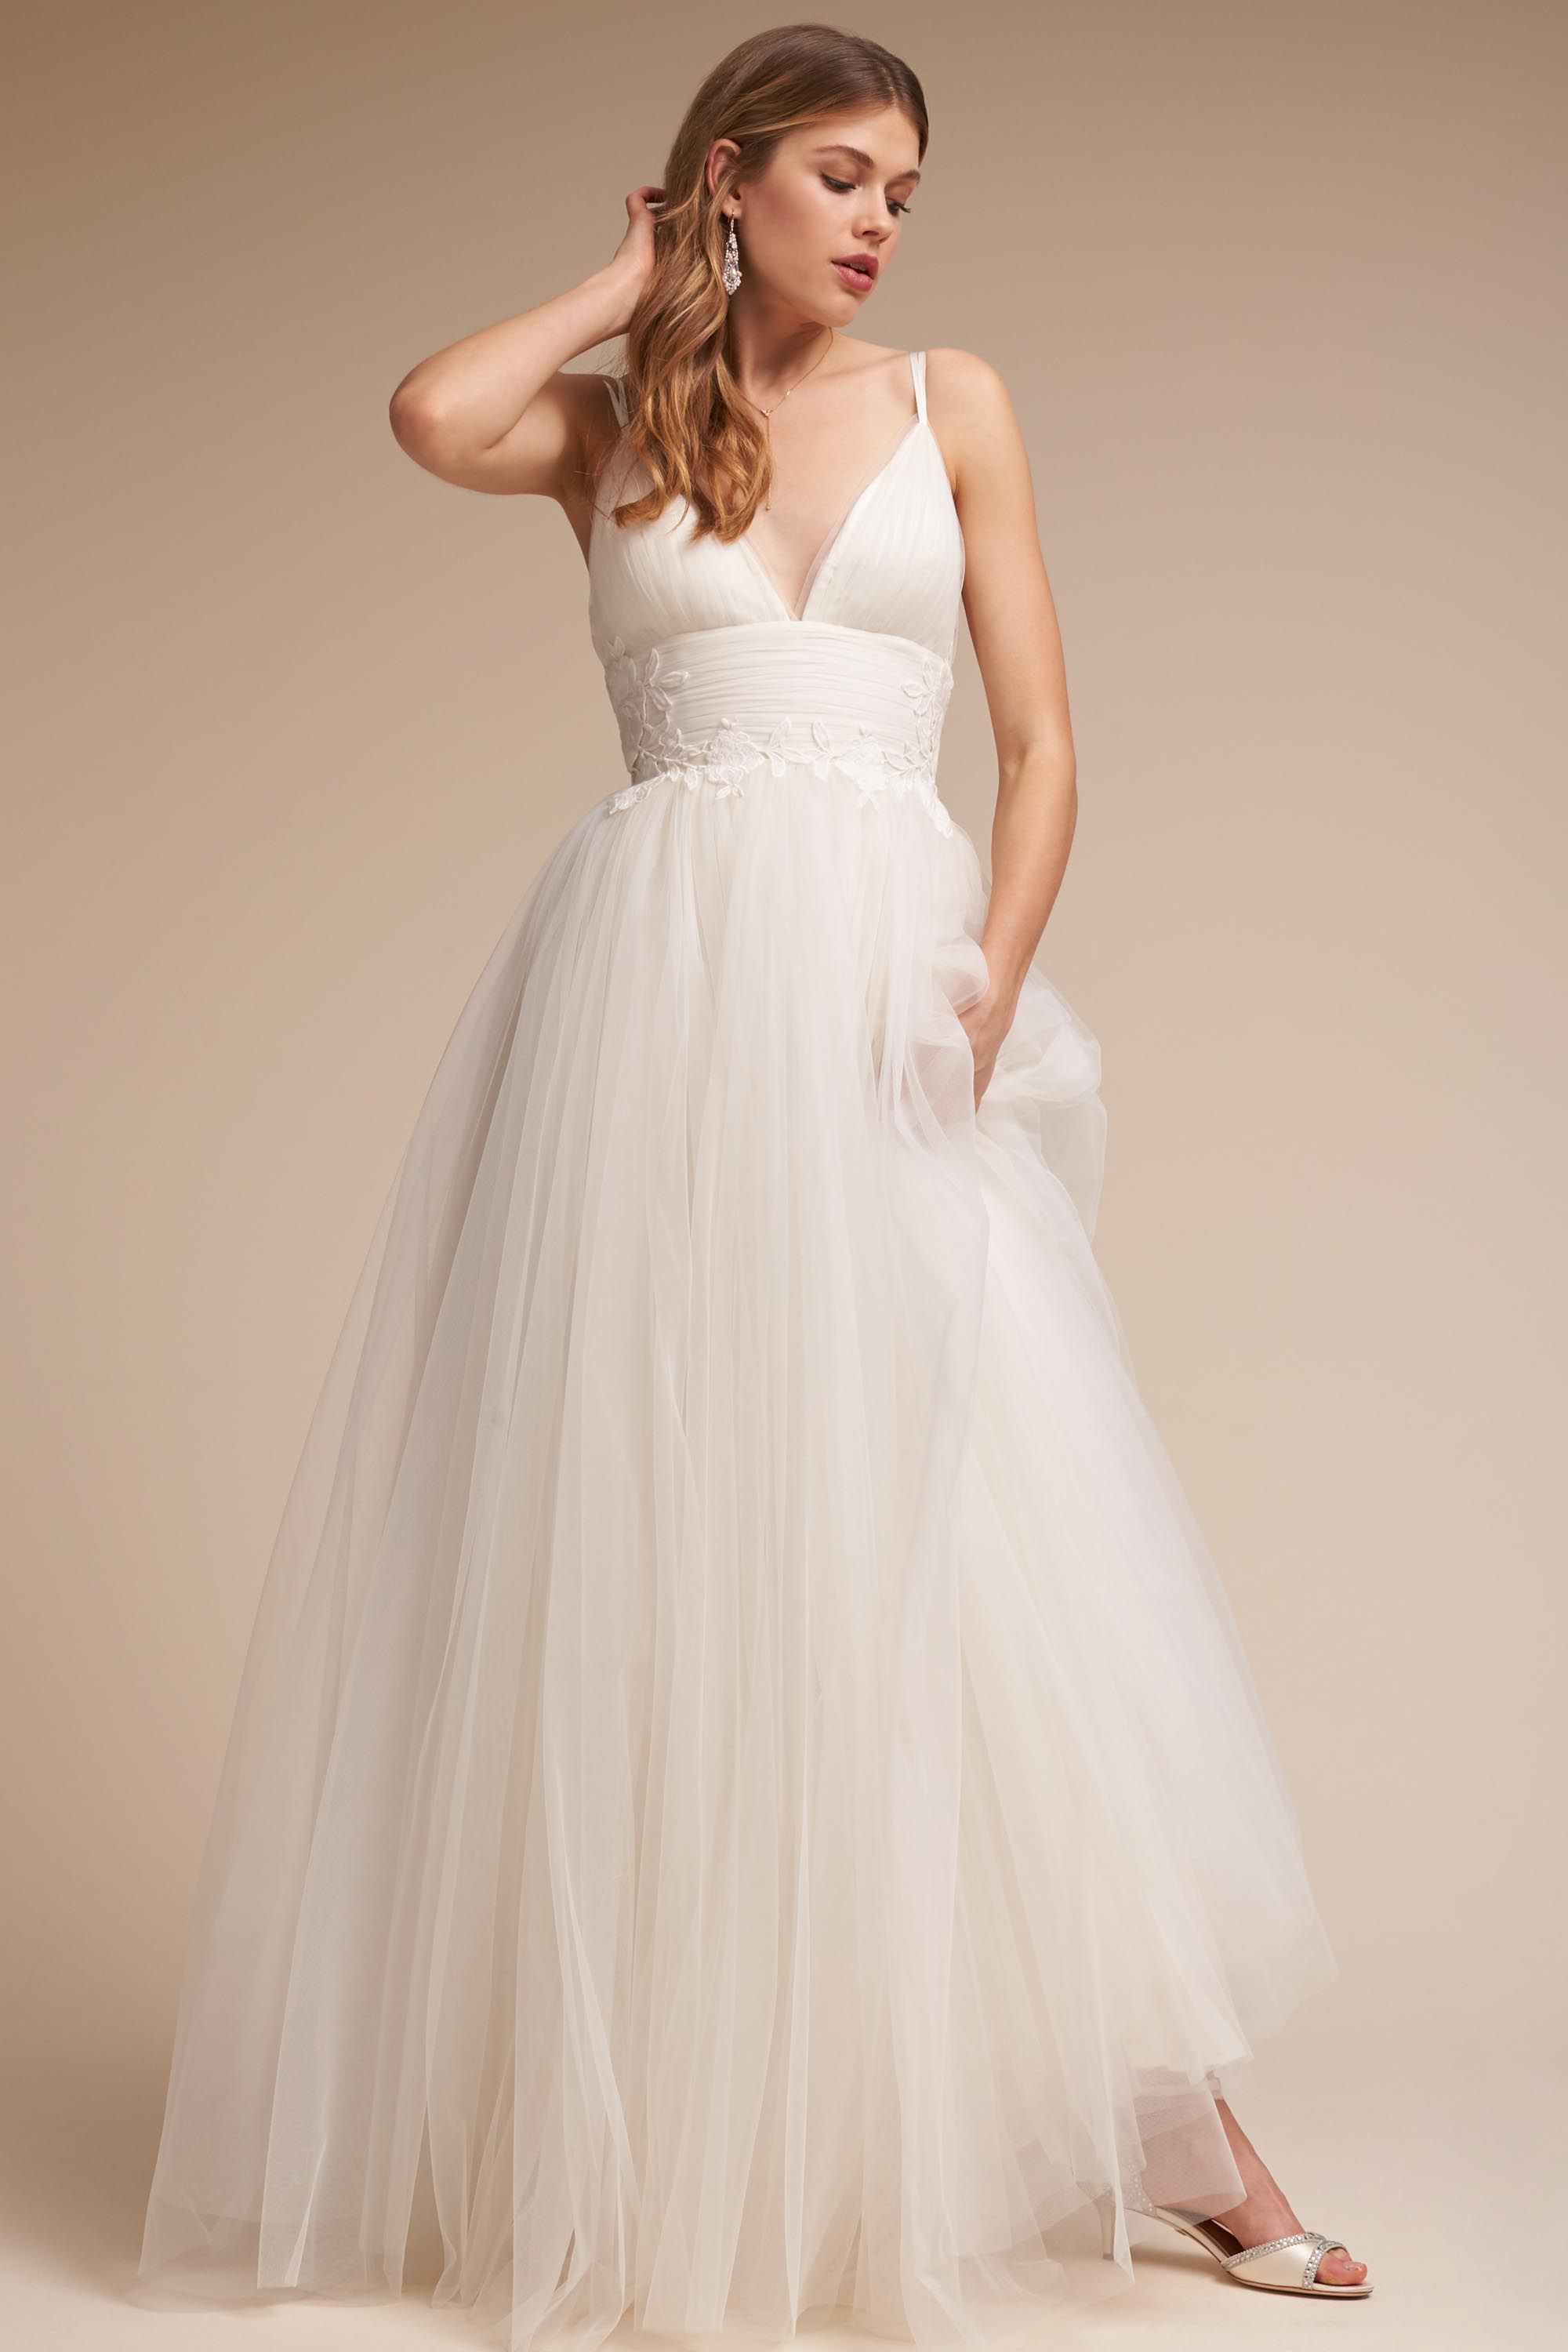 Melrose Gown | Where to Buy BHLDN Wedding Dresses